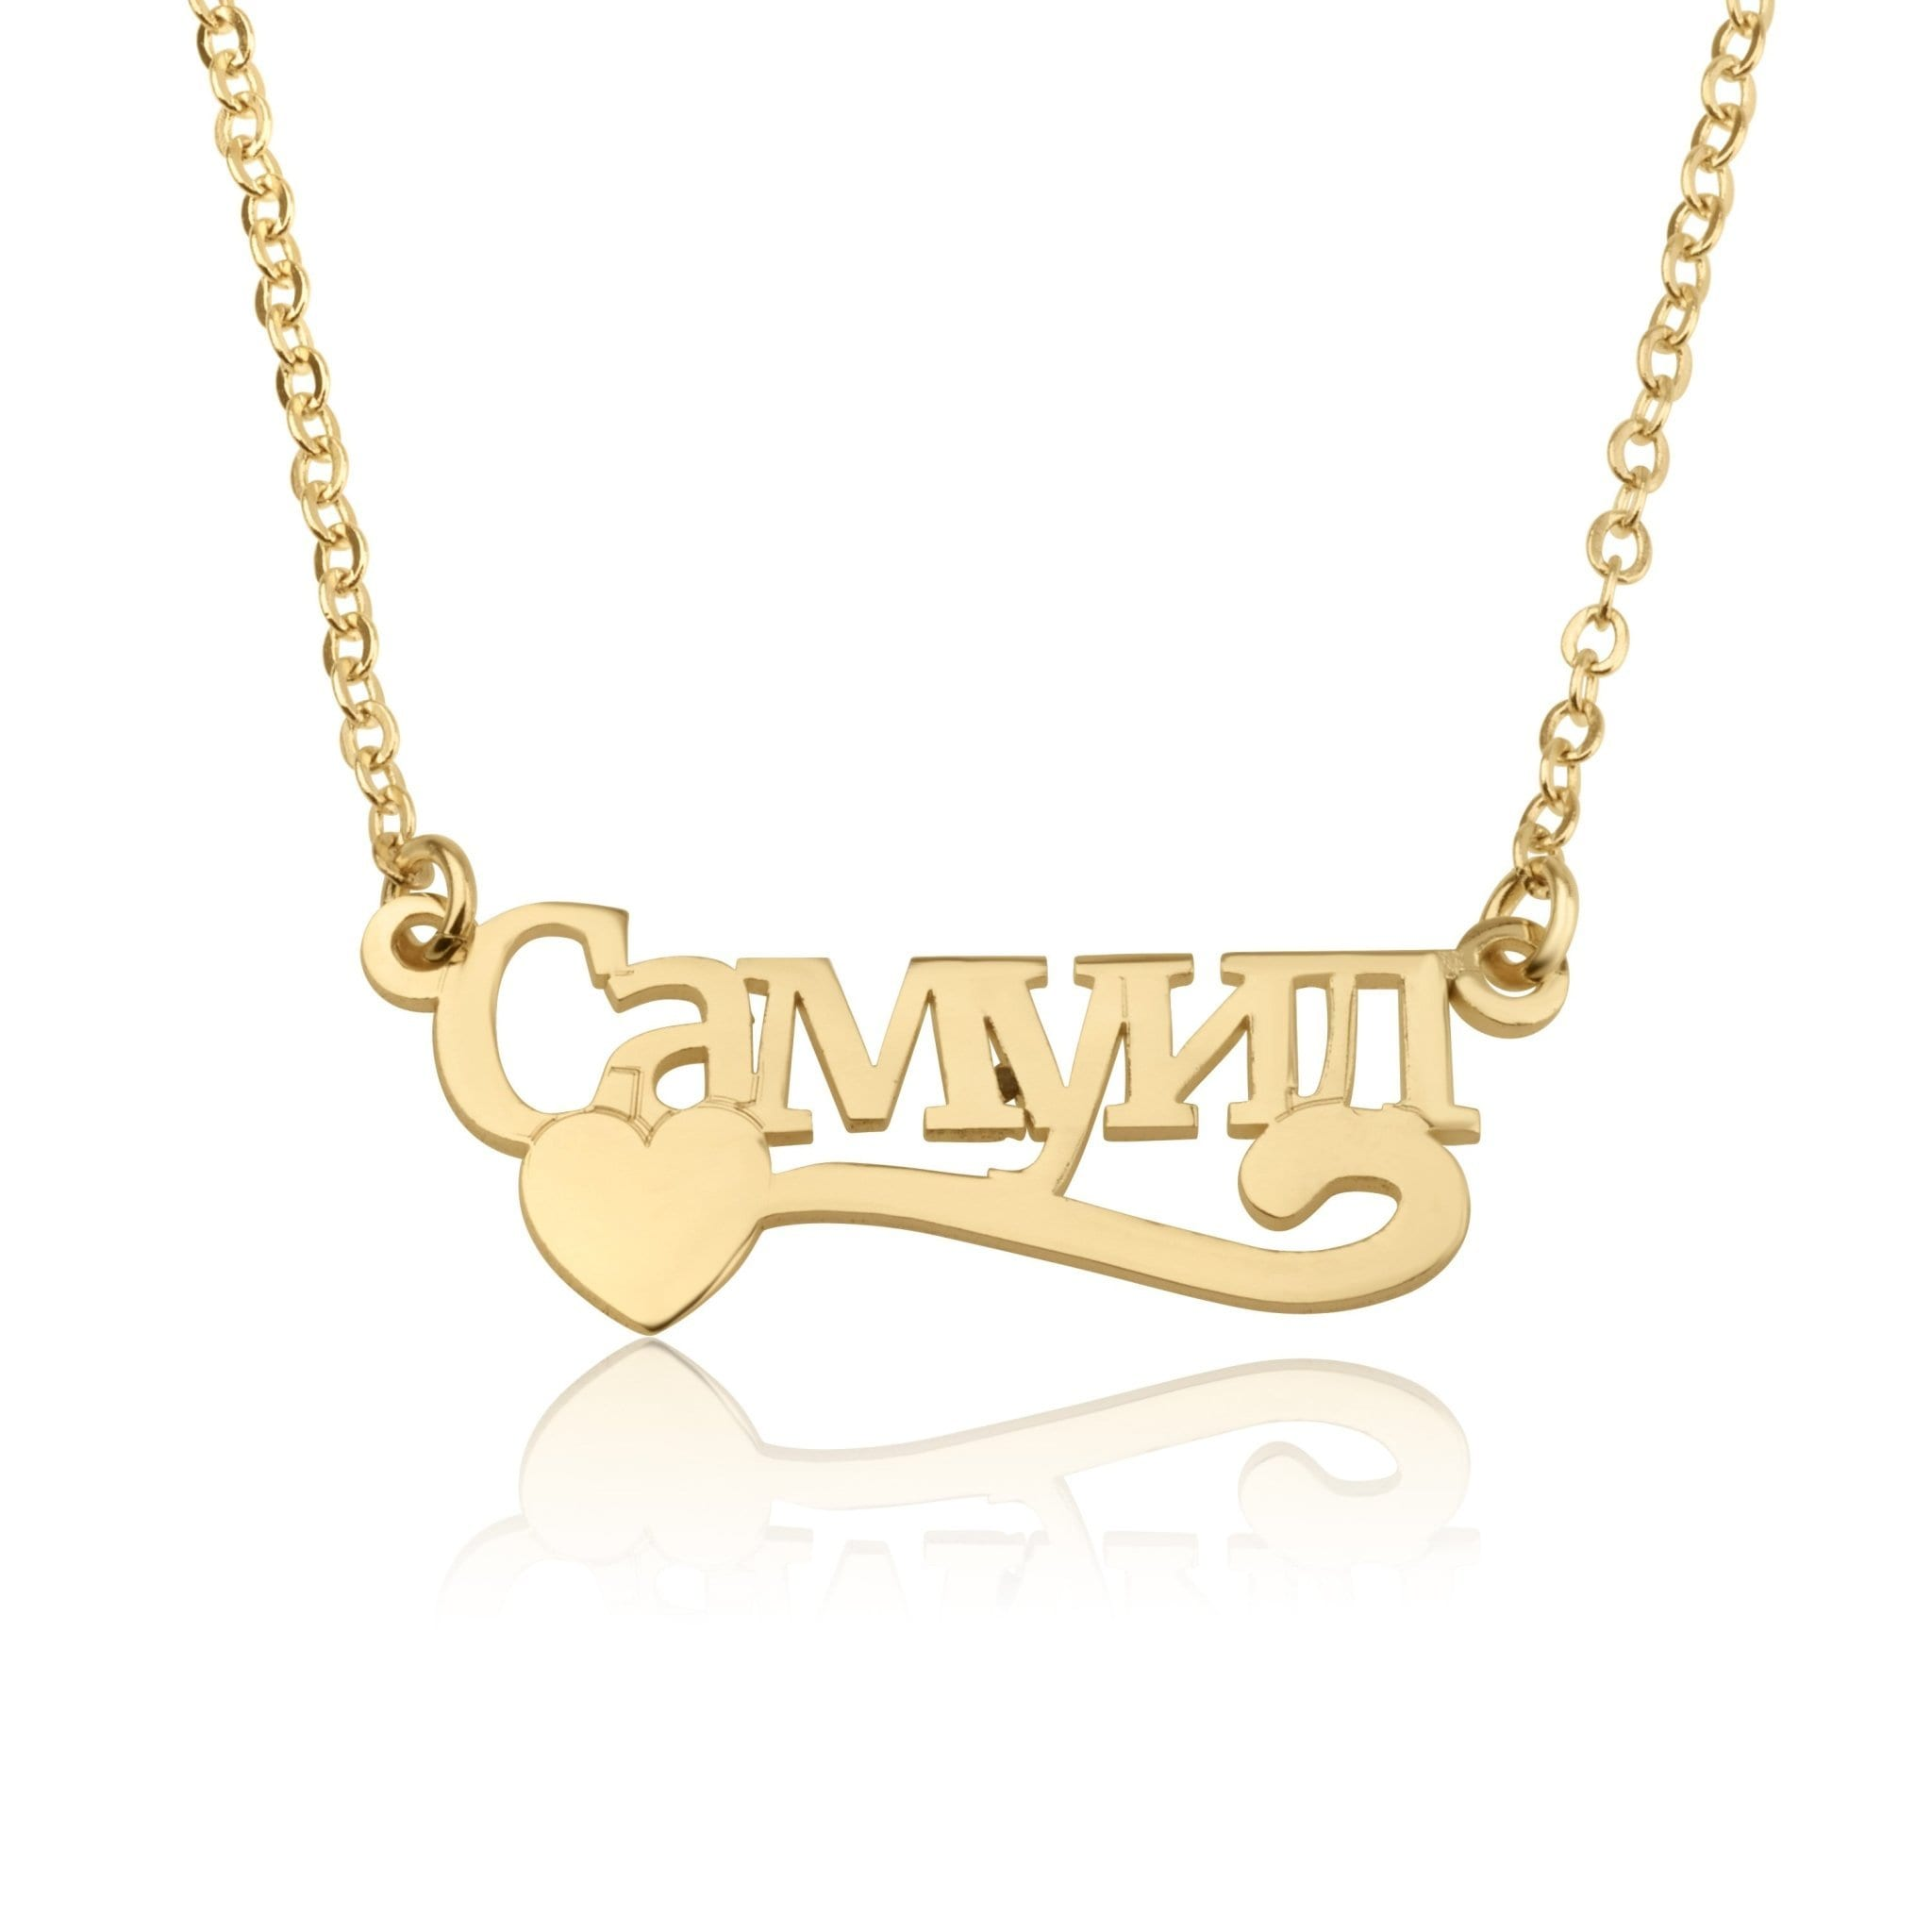 Russian Name Necklace With Heart And Underline - Beleco Jewelry